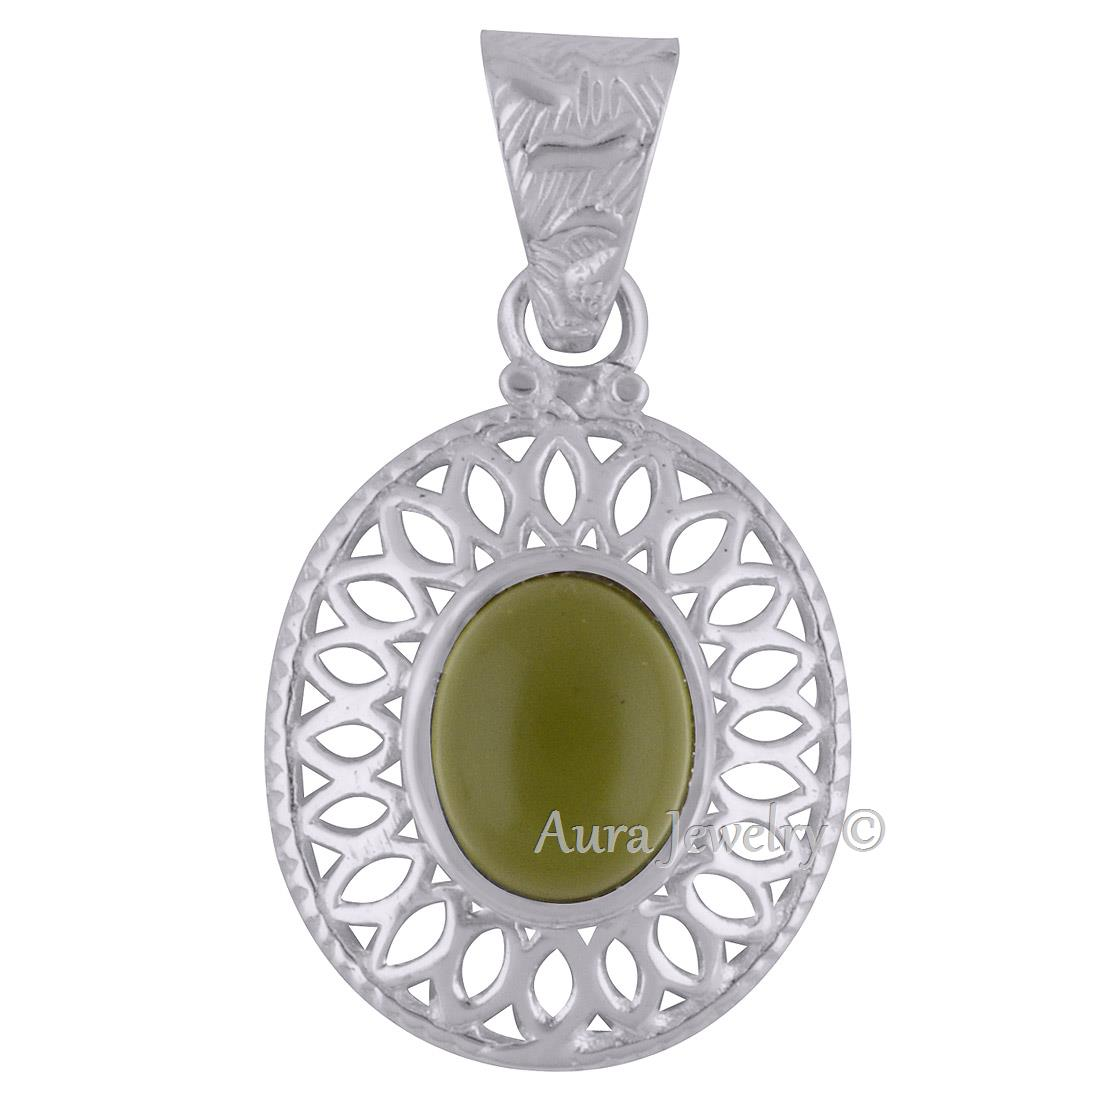 Solid-925-Sterling-Silver-Peridot-Gemstone-Pendant-Necklace-Jewelry-P1835-1 thumbnail 2